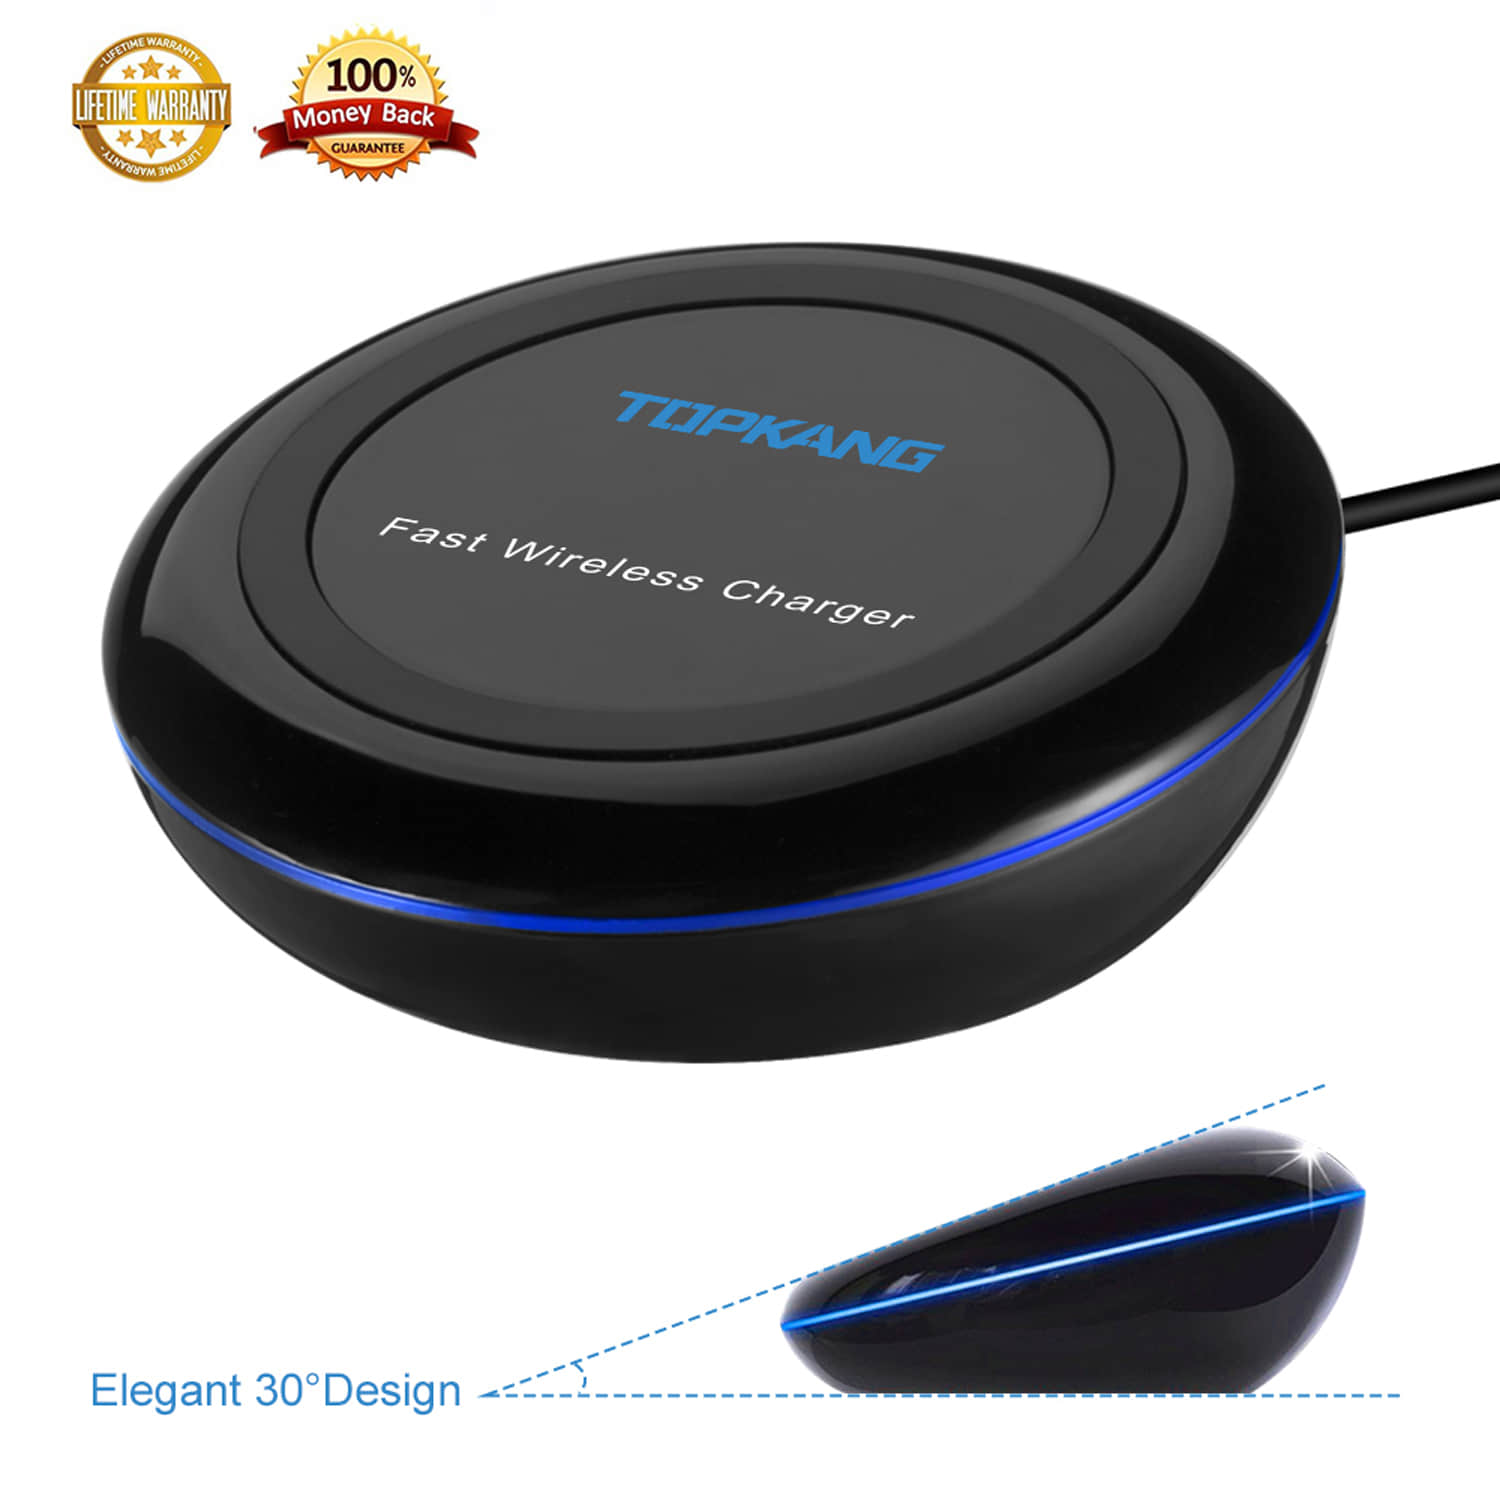 Wireless Charger for Samsung, Fast Wireless Charger,iPhone Wireless Charger,Wireless Charger for iPhone 8 plus,iPhone X,iPhone 8 and Samsung Galaxy S9,S8,S7,S5,S6